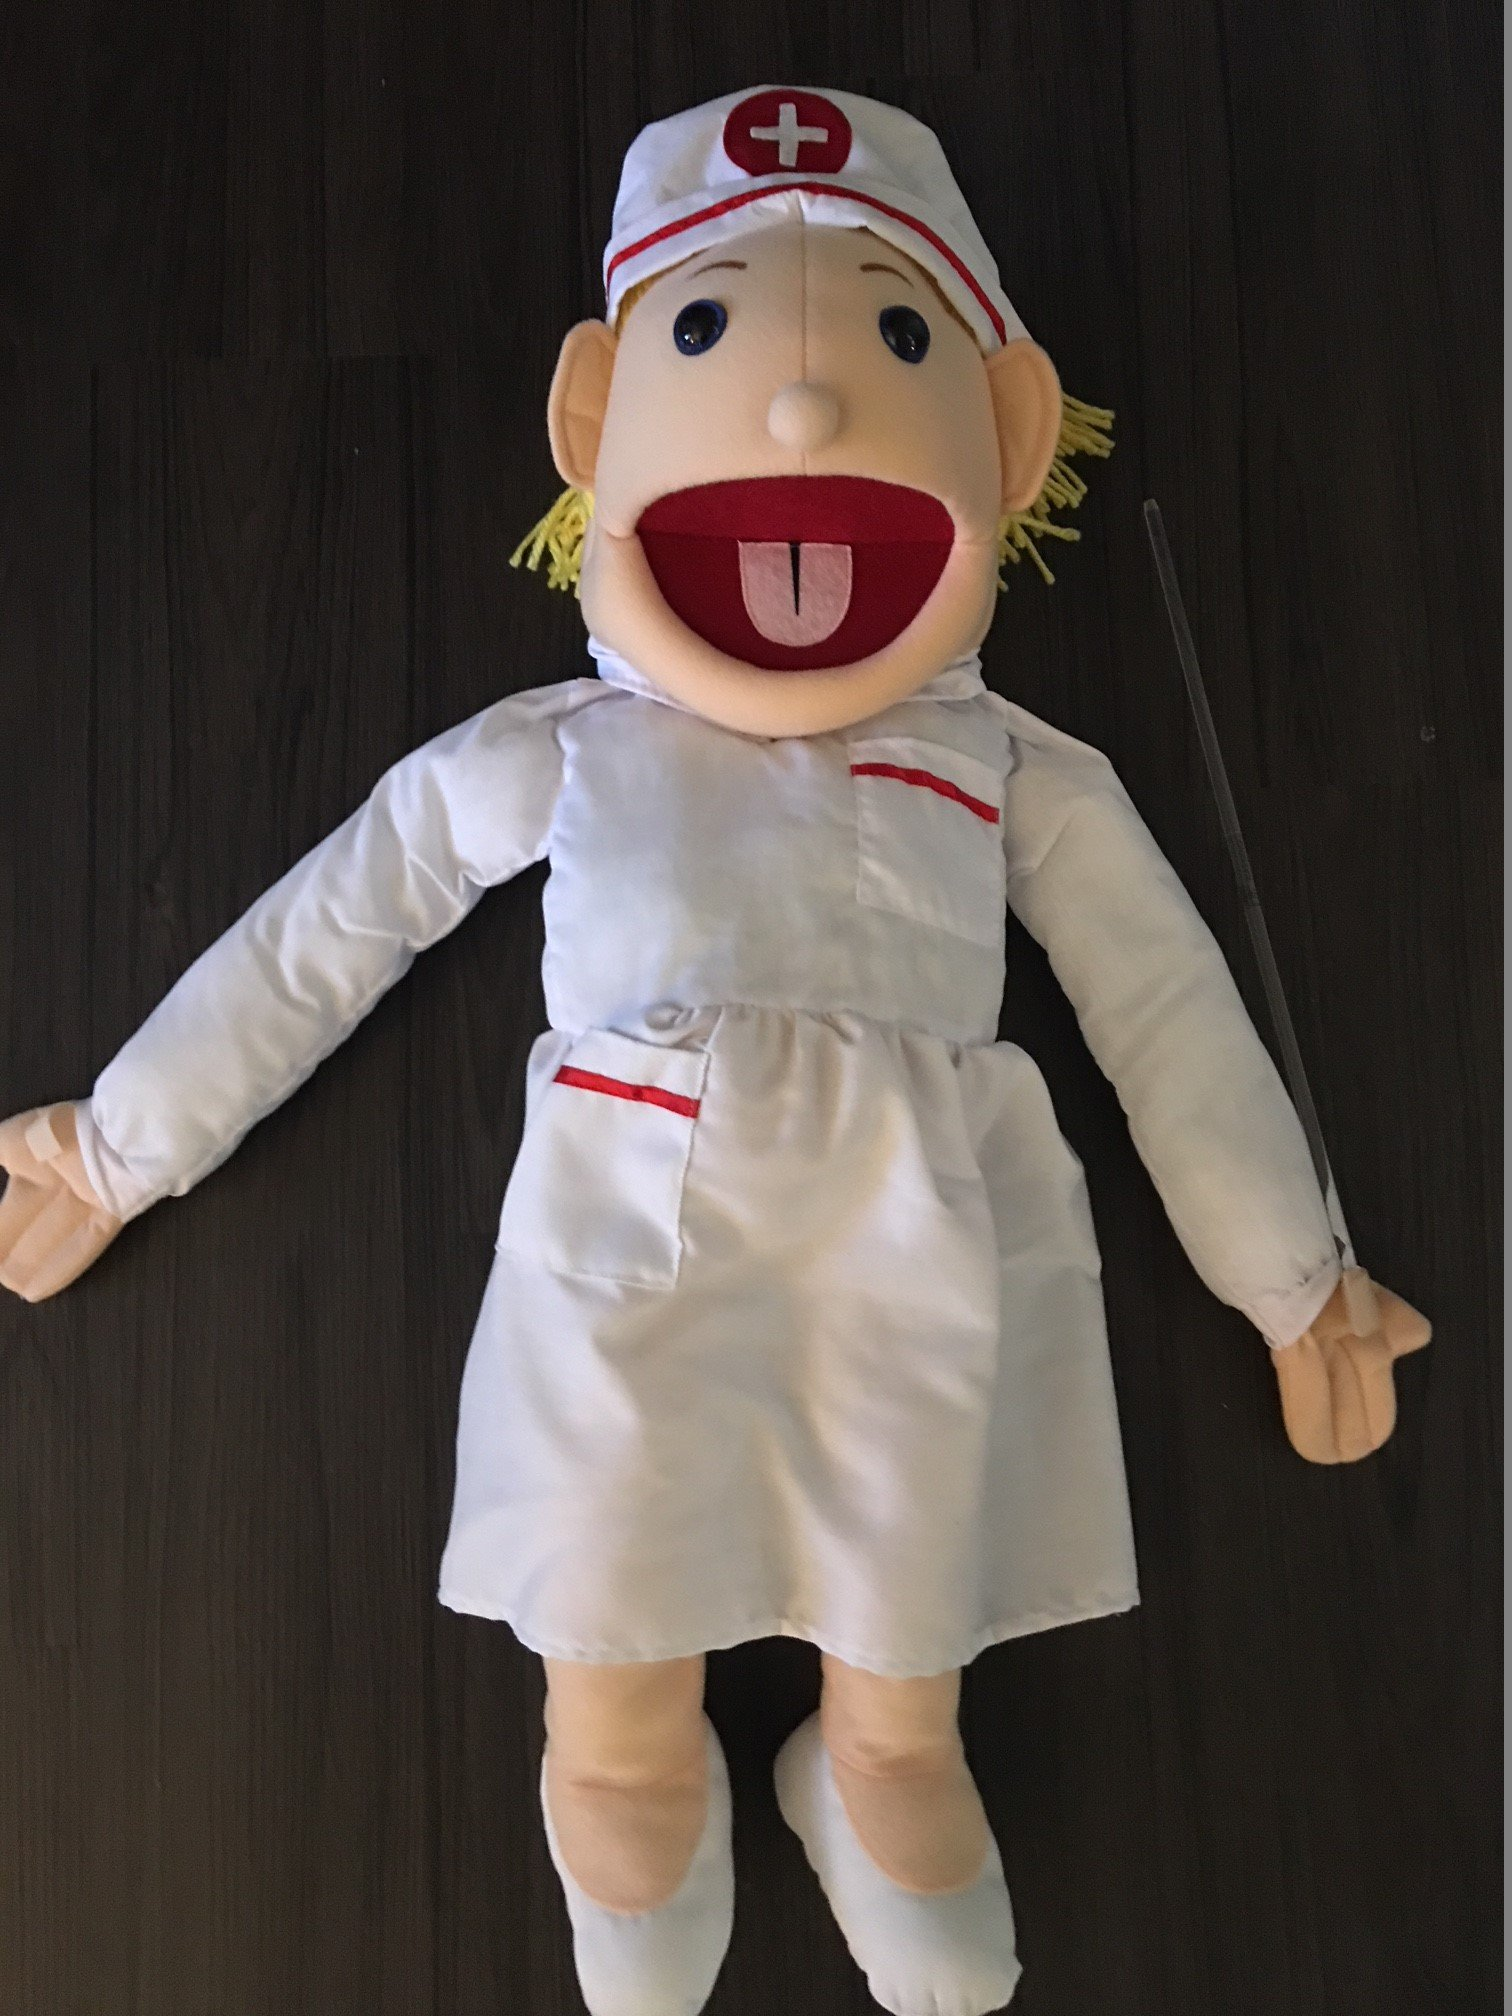 28'' Blonde Nurse Puppet, Full Body, Ventriloquist Style Puppet by Puppets4u (Image #3)